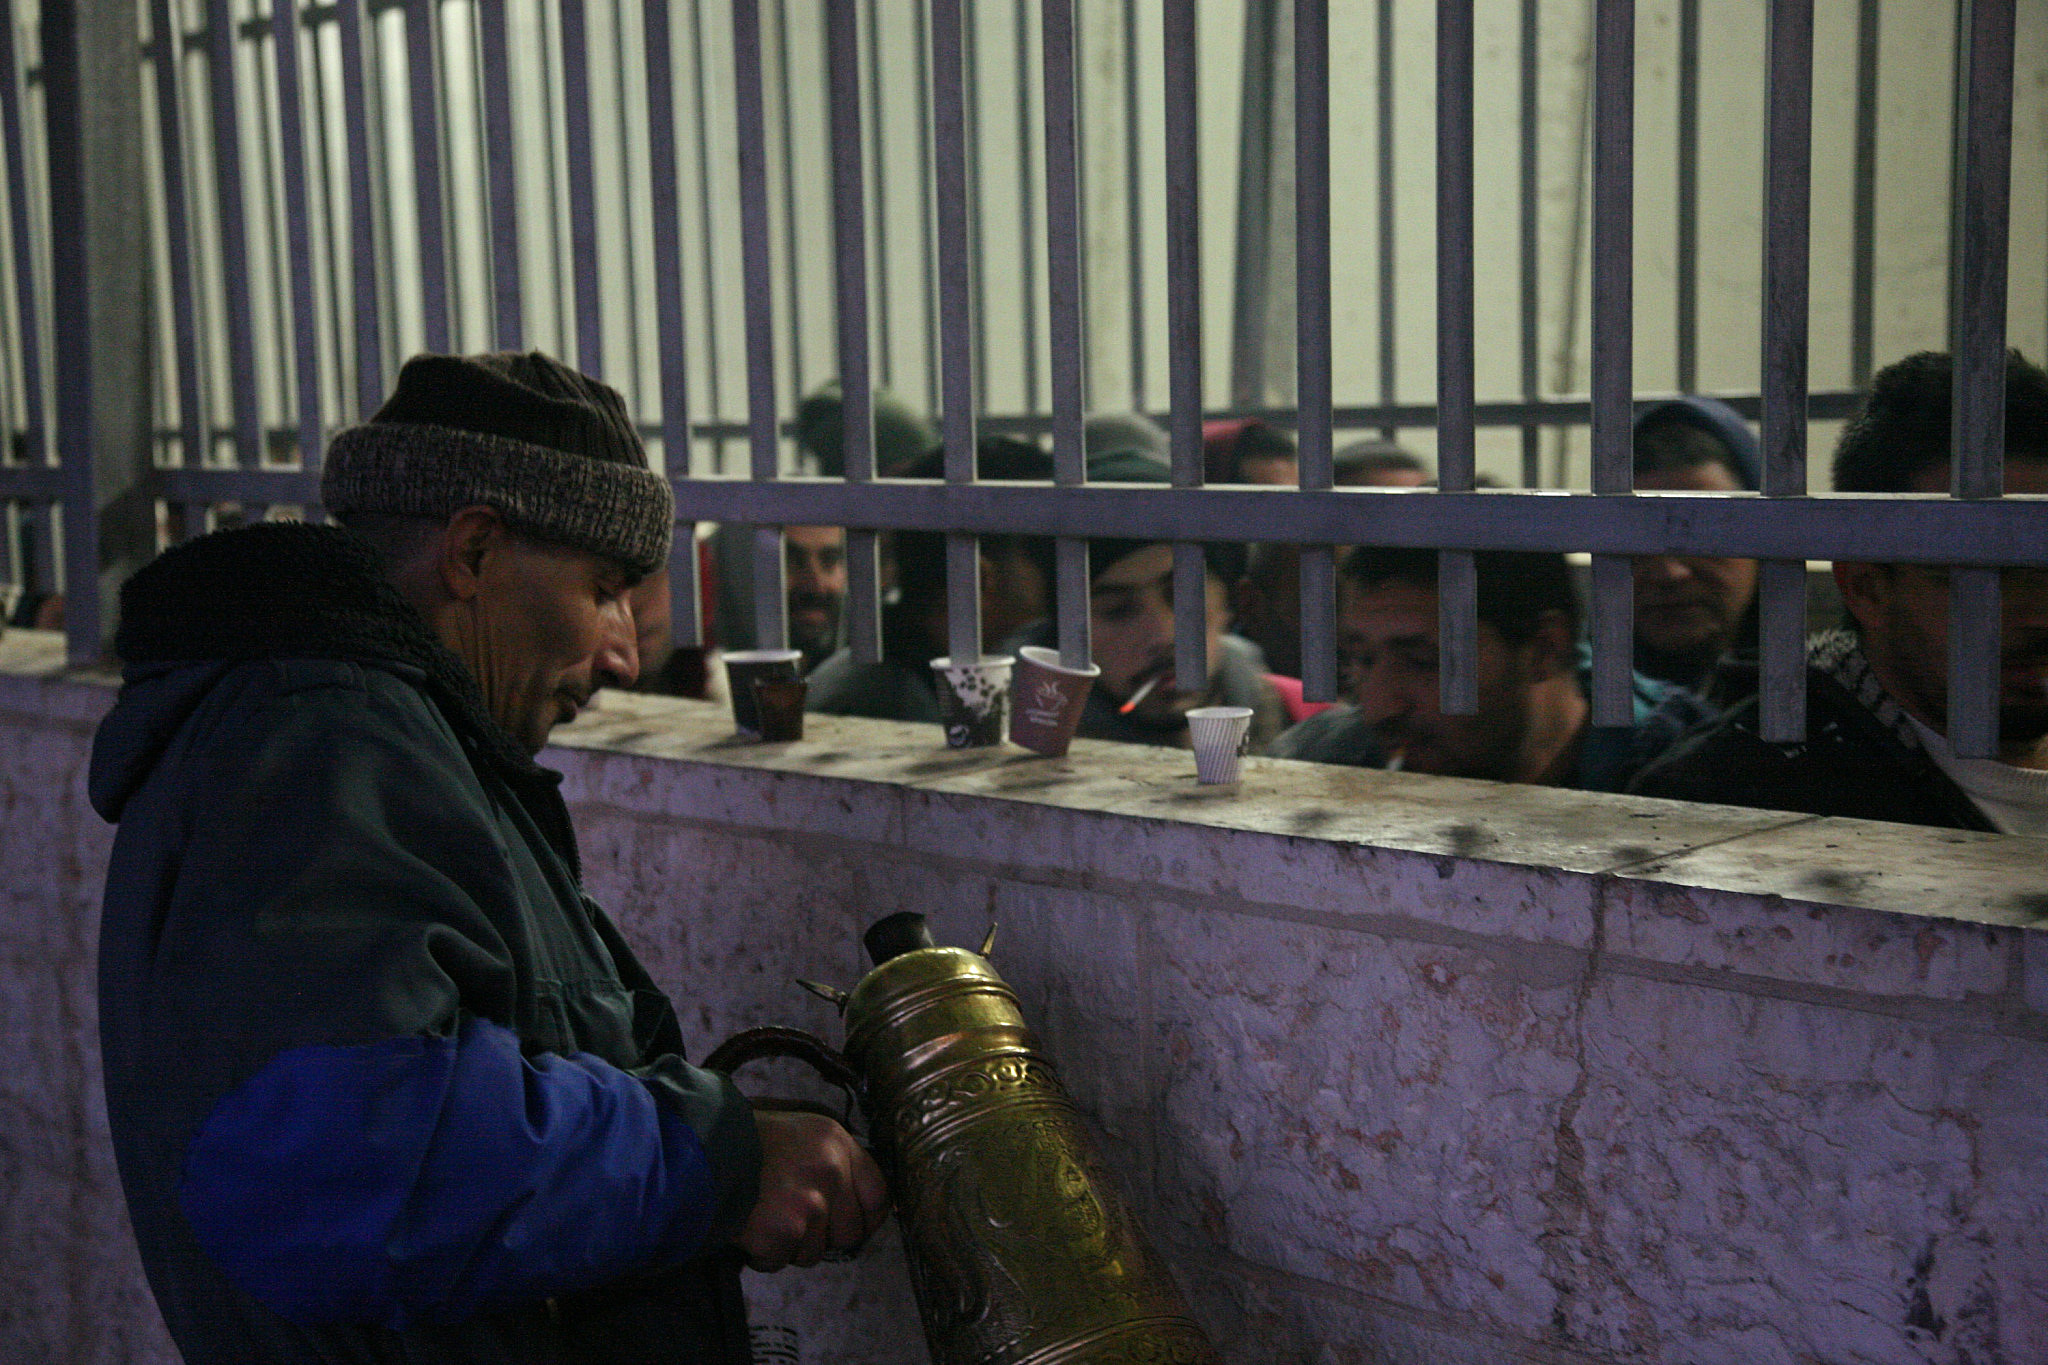 A Palestinian man sells coffee to Palestinian workers waiting to cross the Israeli Bethlehem checkpoint on their way to work, Bethlehem, West Bank, February 8, 2017. (Activestills.org)